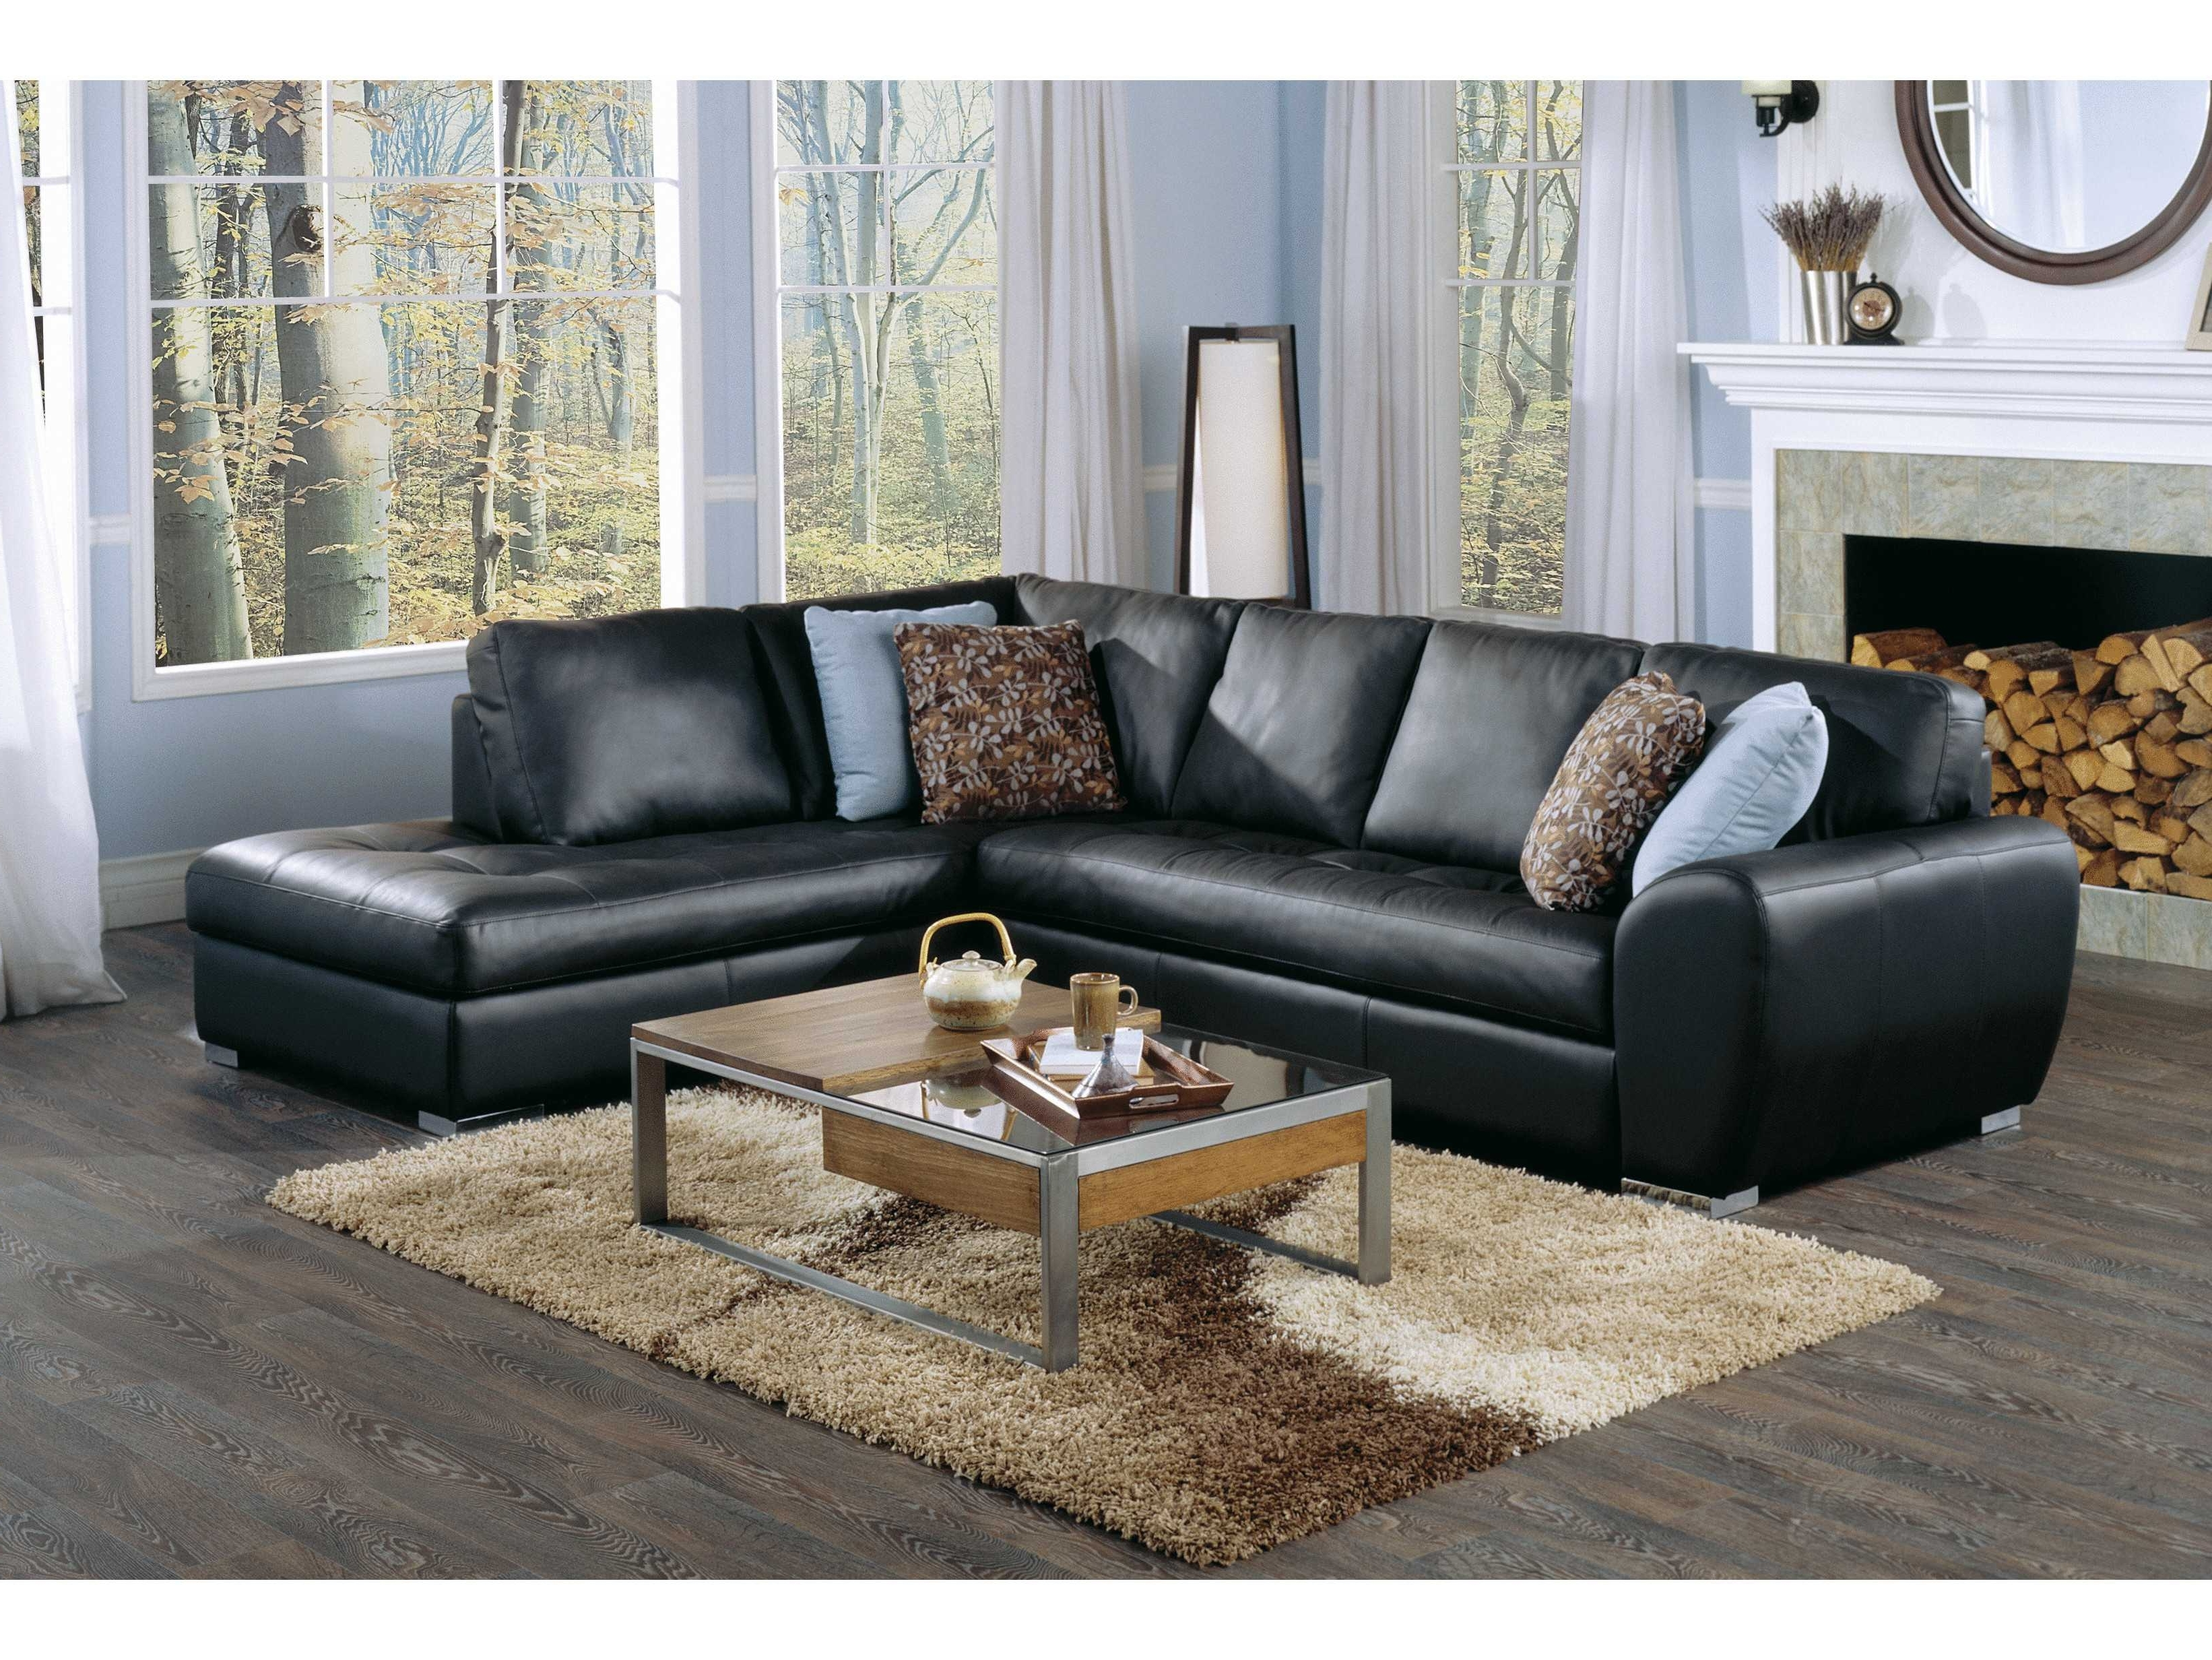 Pl77857Sc1 With Kelowna Sectional Sofas (View 1 of 15)